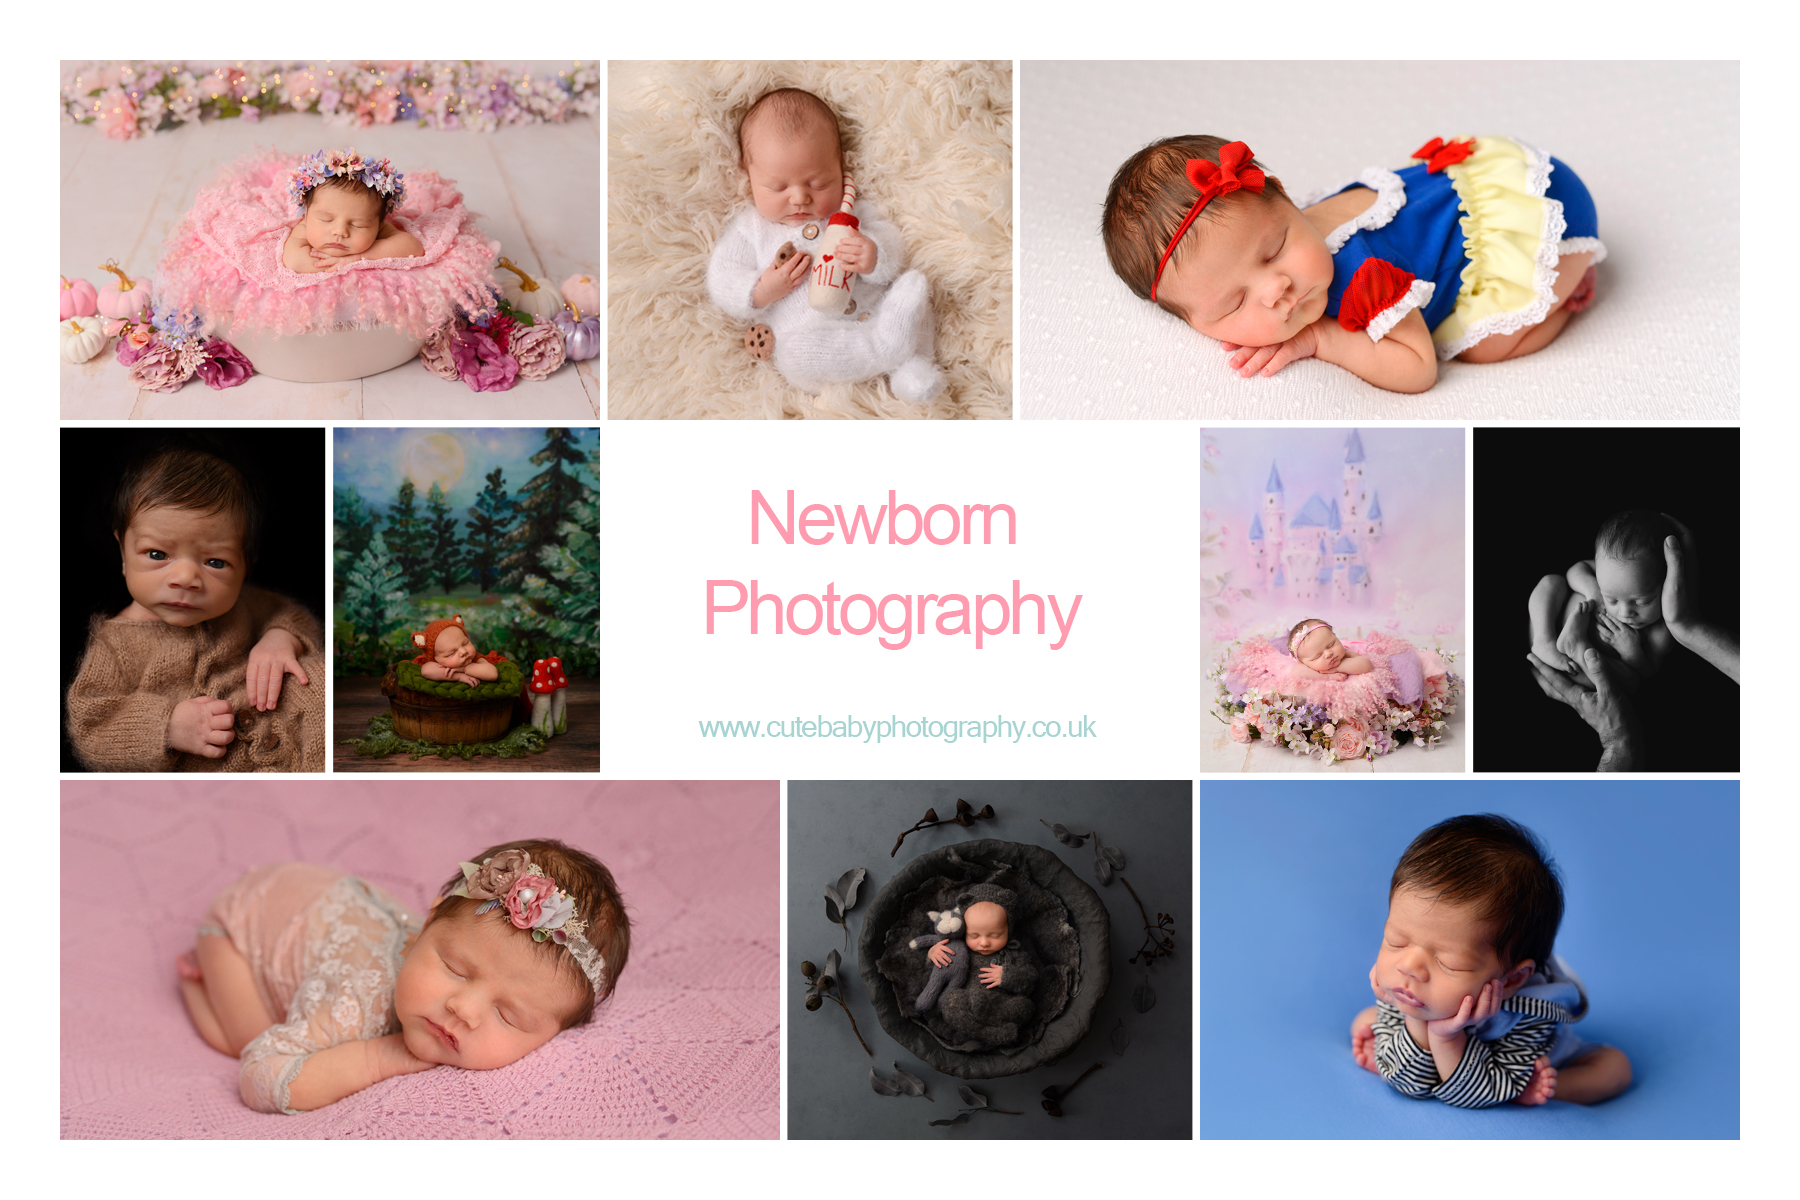 Newborn Photography Manchester, Newborn Pictures Cheshire, Newborn Photographer Tameside